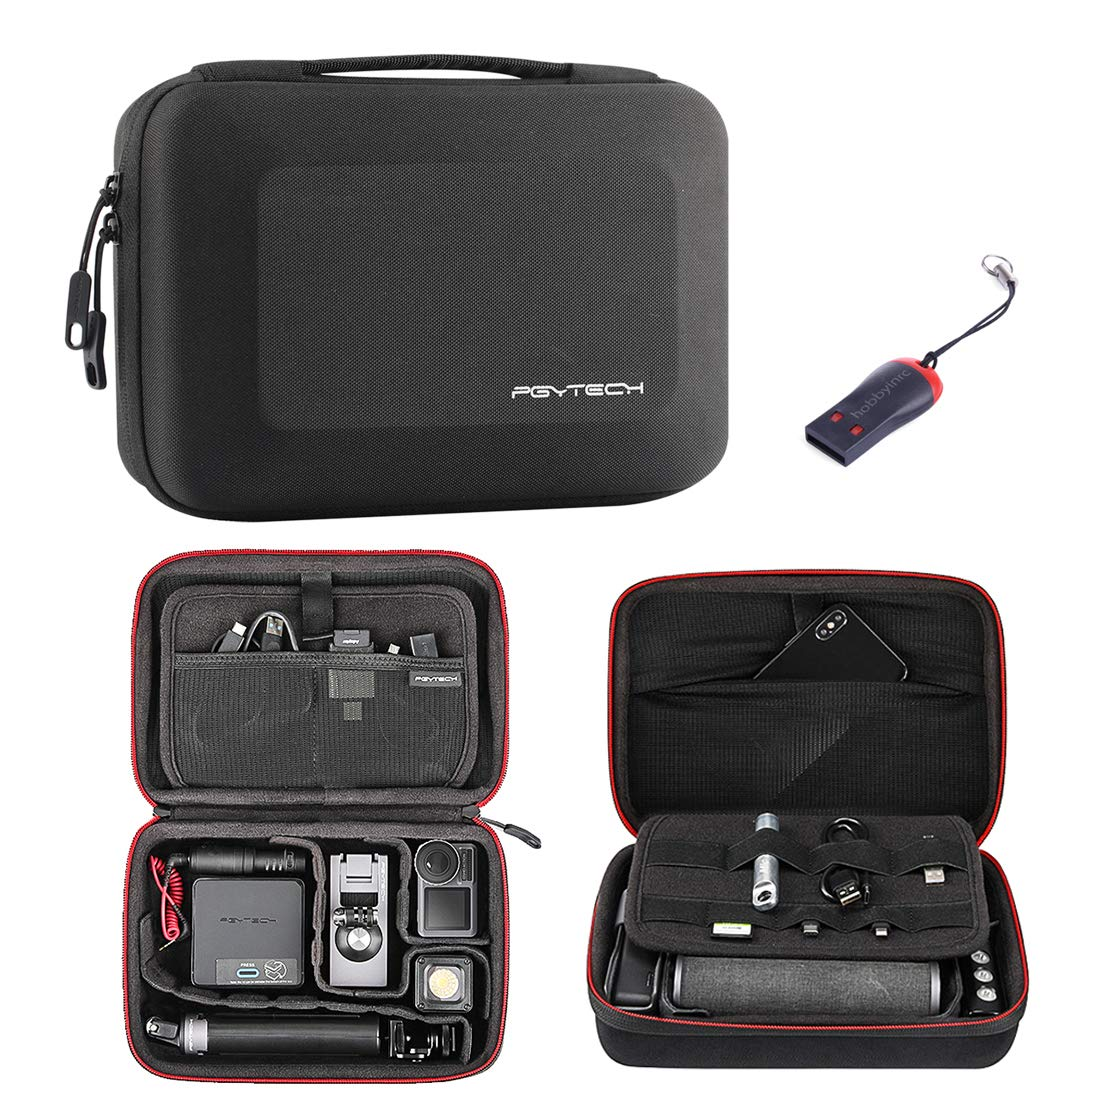 PGYTECH Portable Bag Travel Bag Storage Box Carrying Case for DJI OSMO Action Camera/OSMO Pocket/DJI OSMO Mobile 3,with USB Reader by PGYTECH